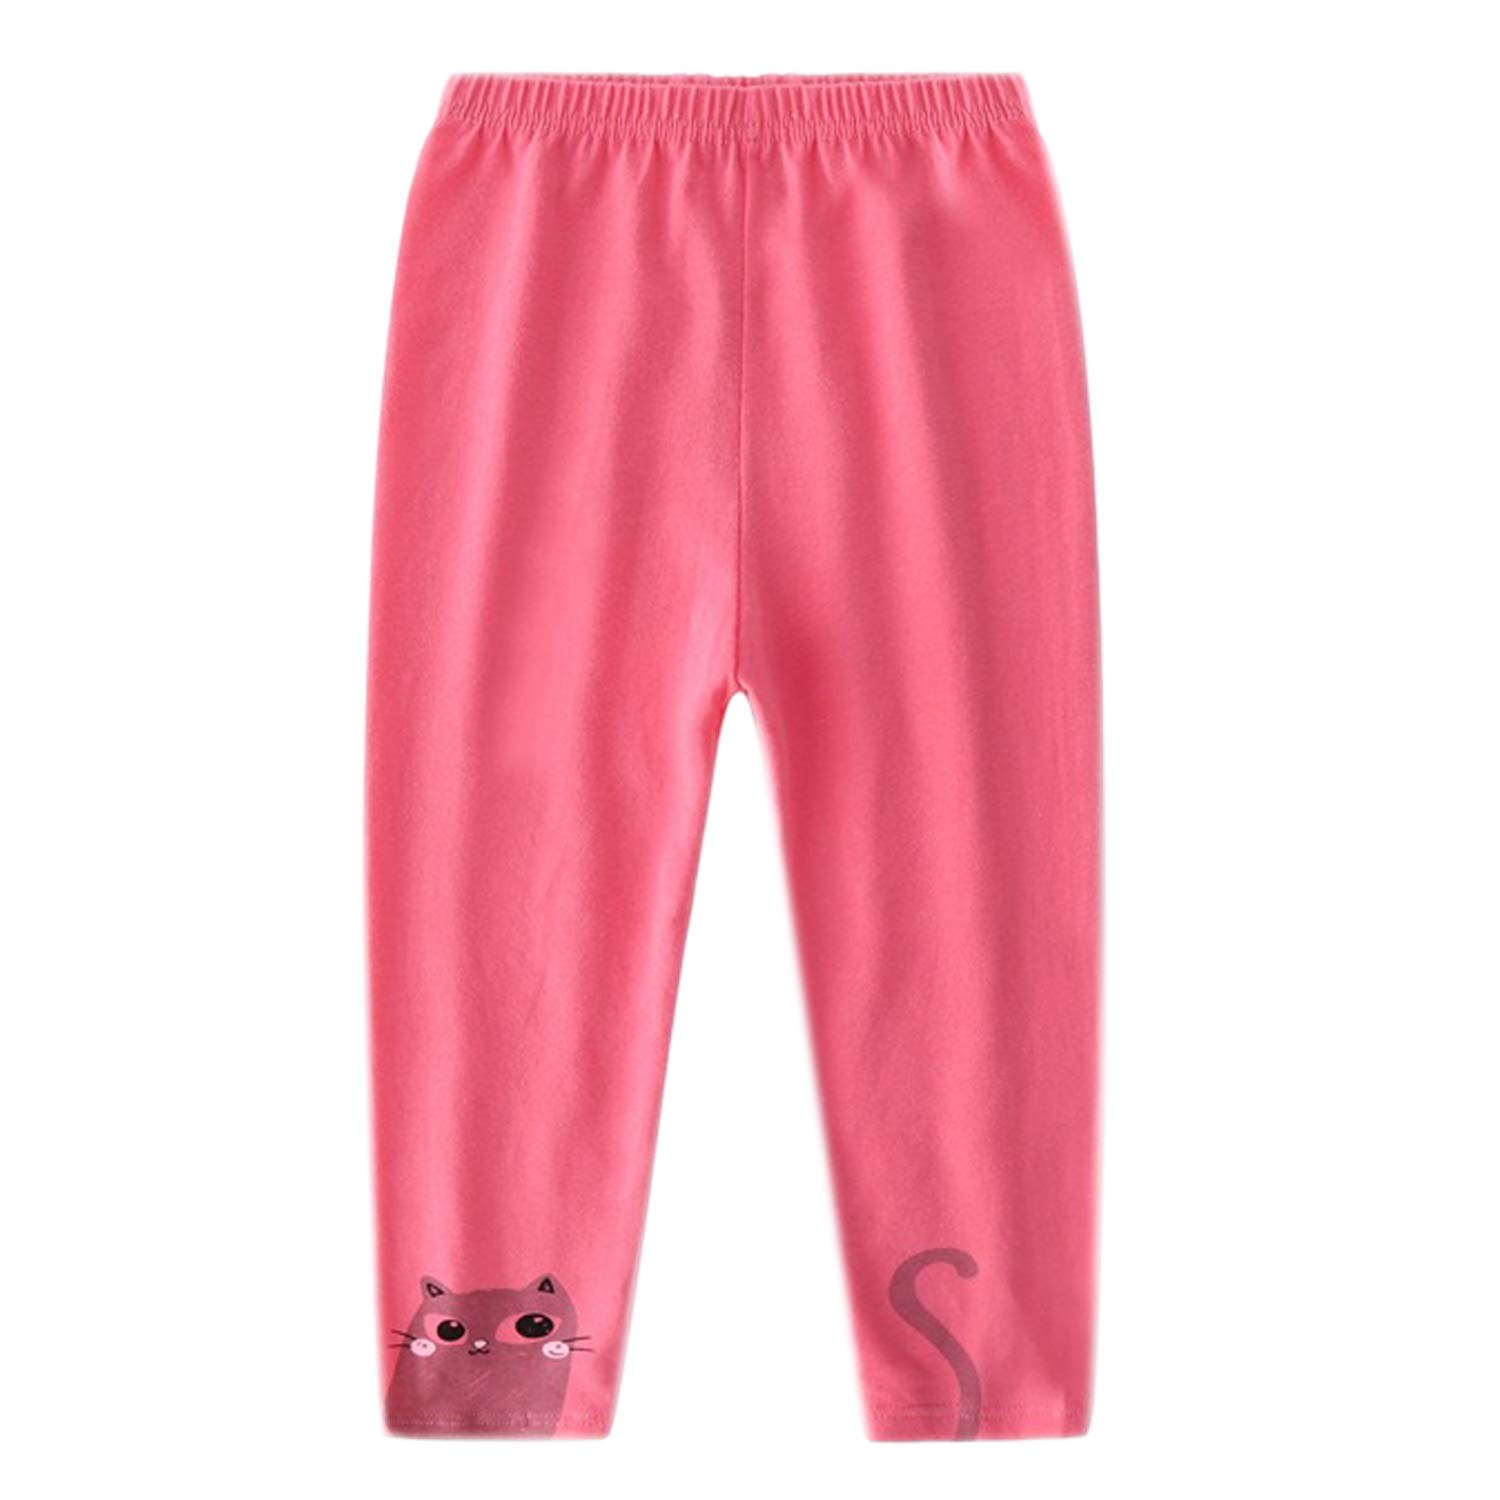 Evelin LEE 4 Packs Baby Girls Cotton Stretchy Tapered Pants Cute Skinny Pajamas Leggings by Evelin LEE (Image #4)